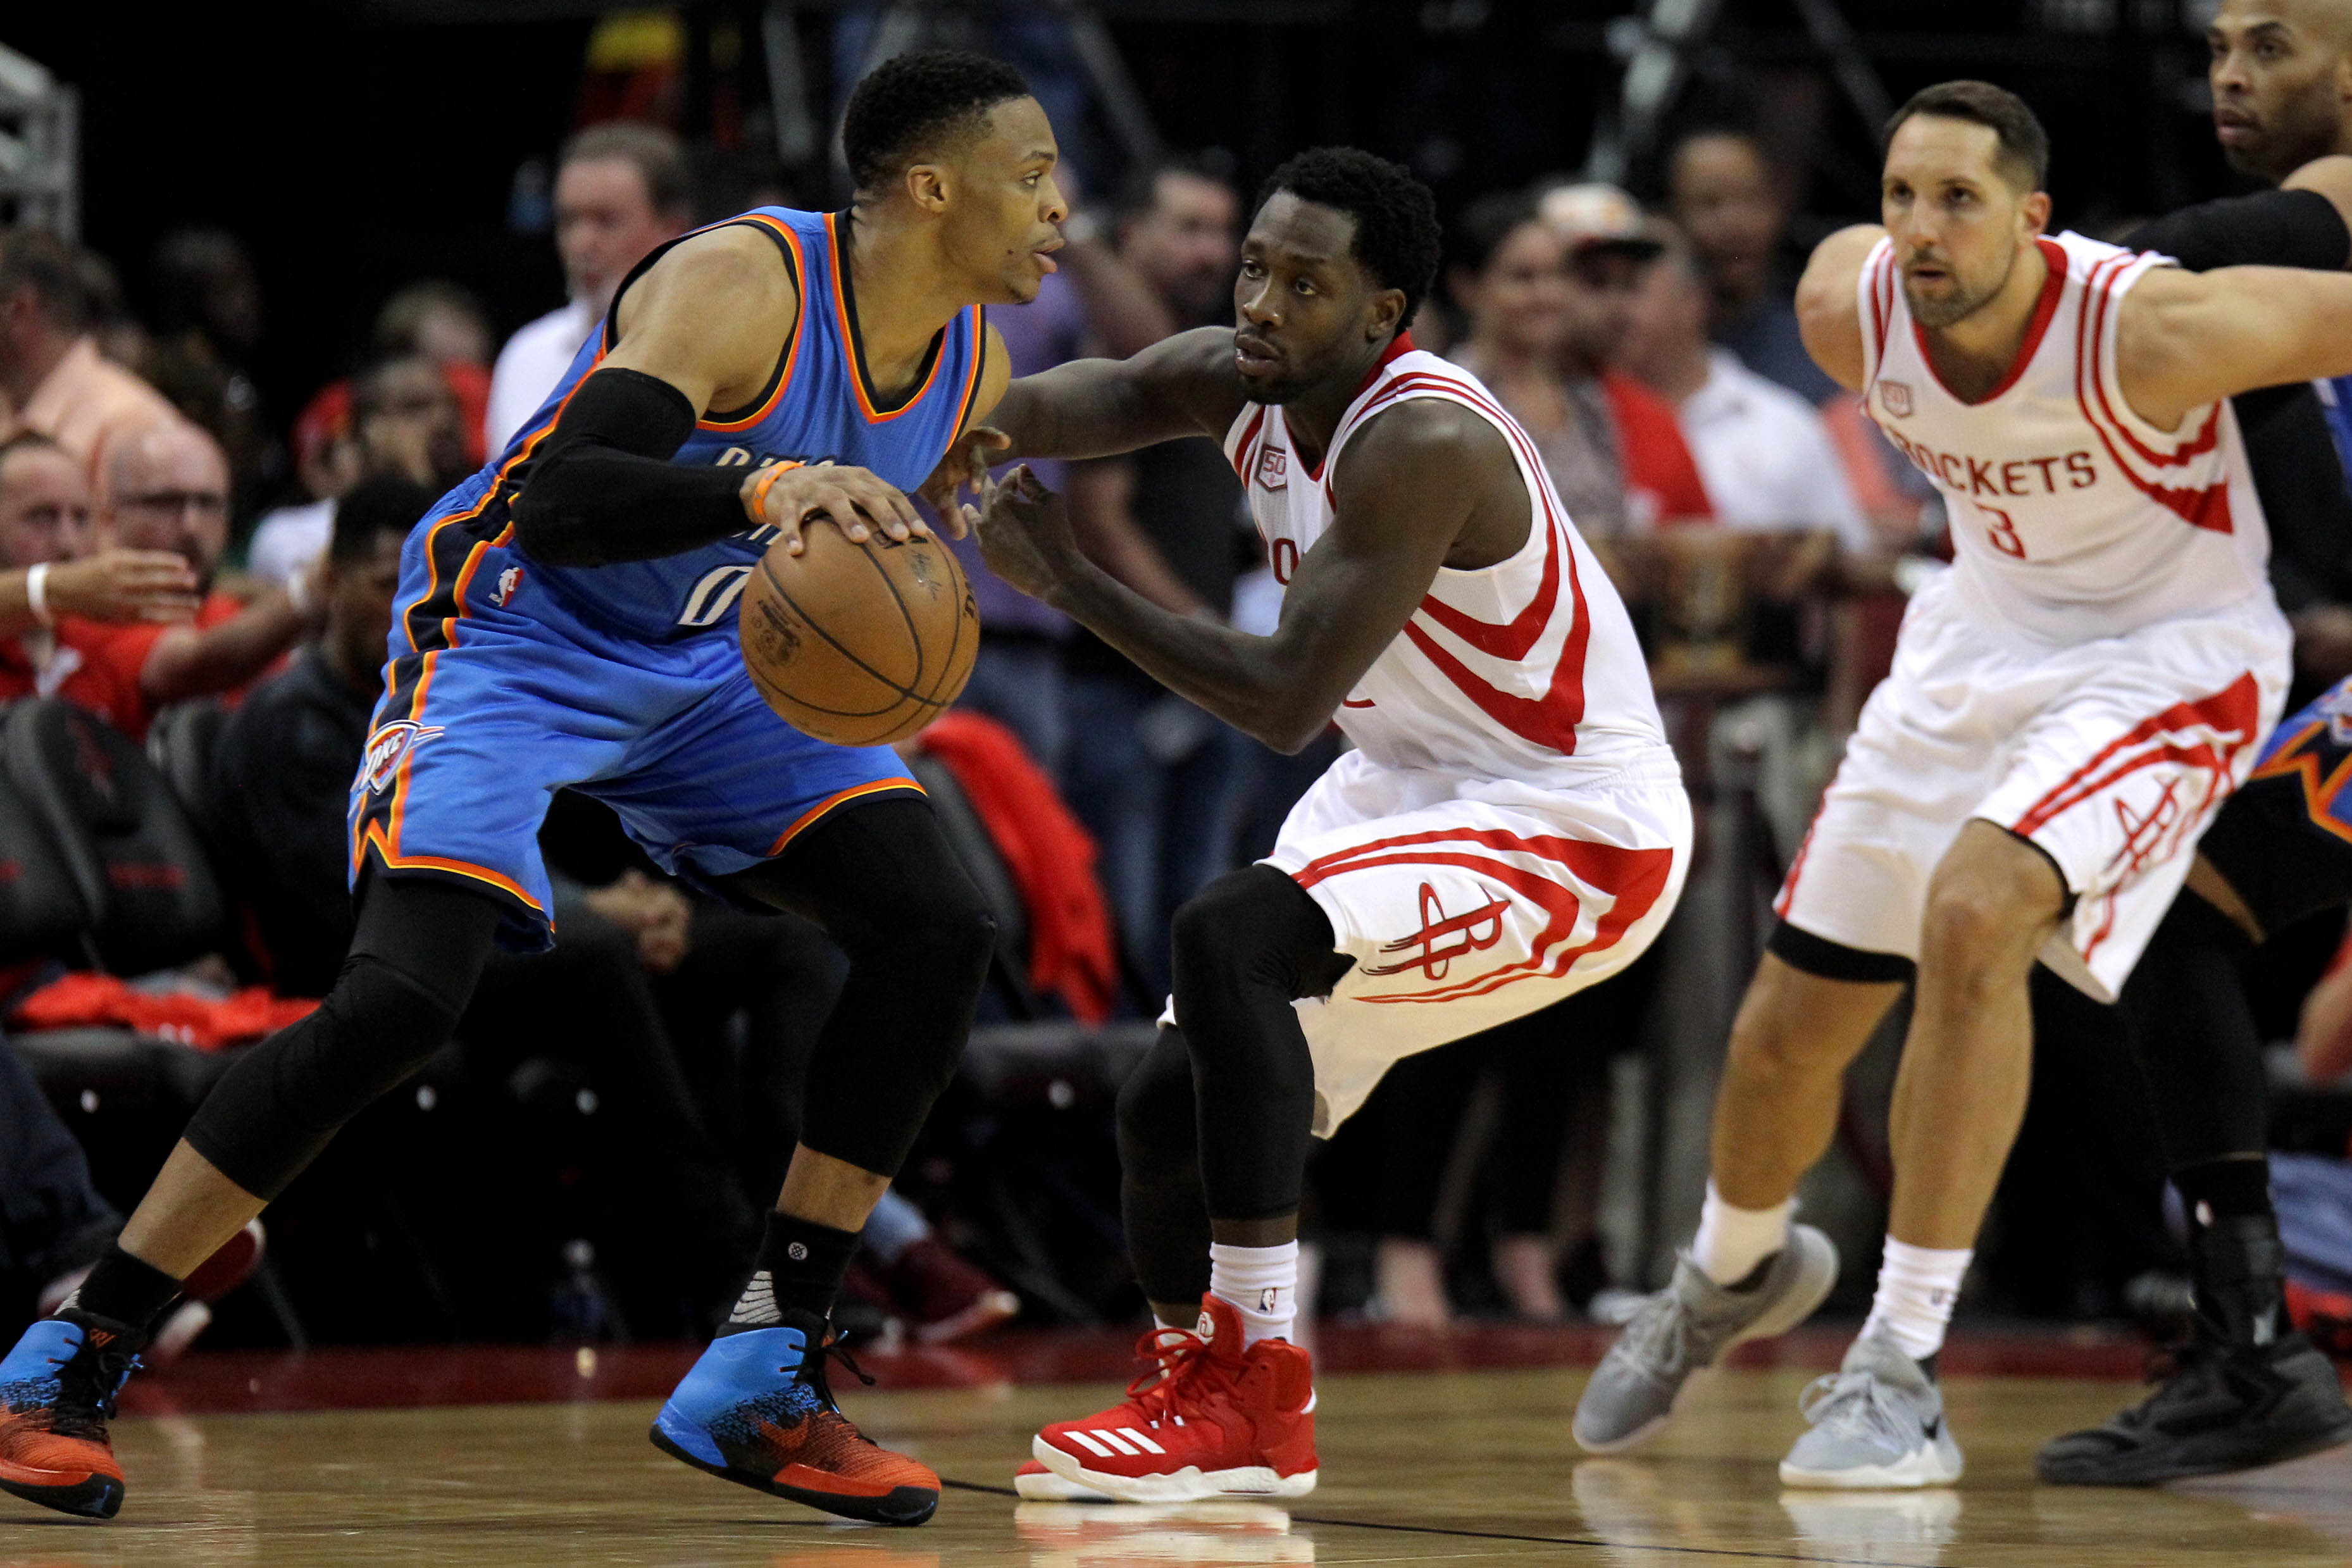 10020974-nba-playoffs-oklahoma-city-thunder-at-houston-rockets